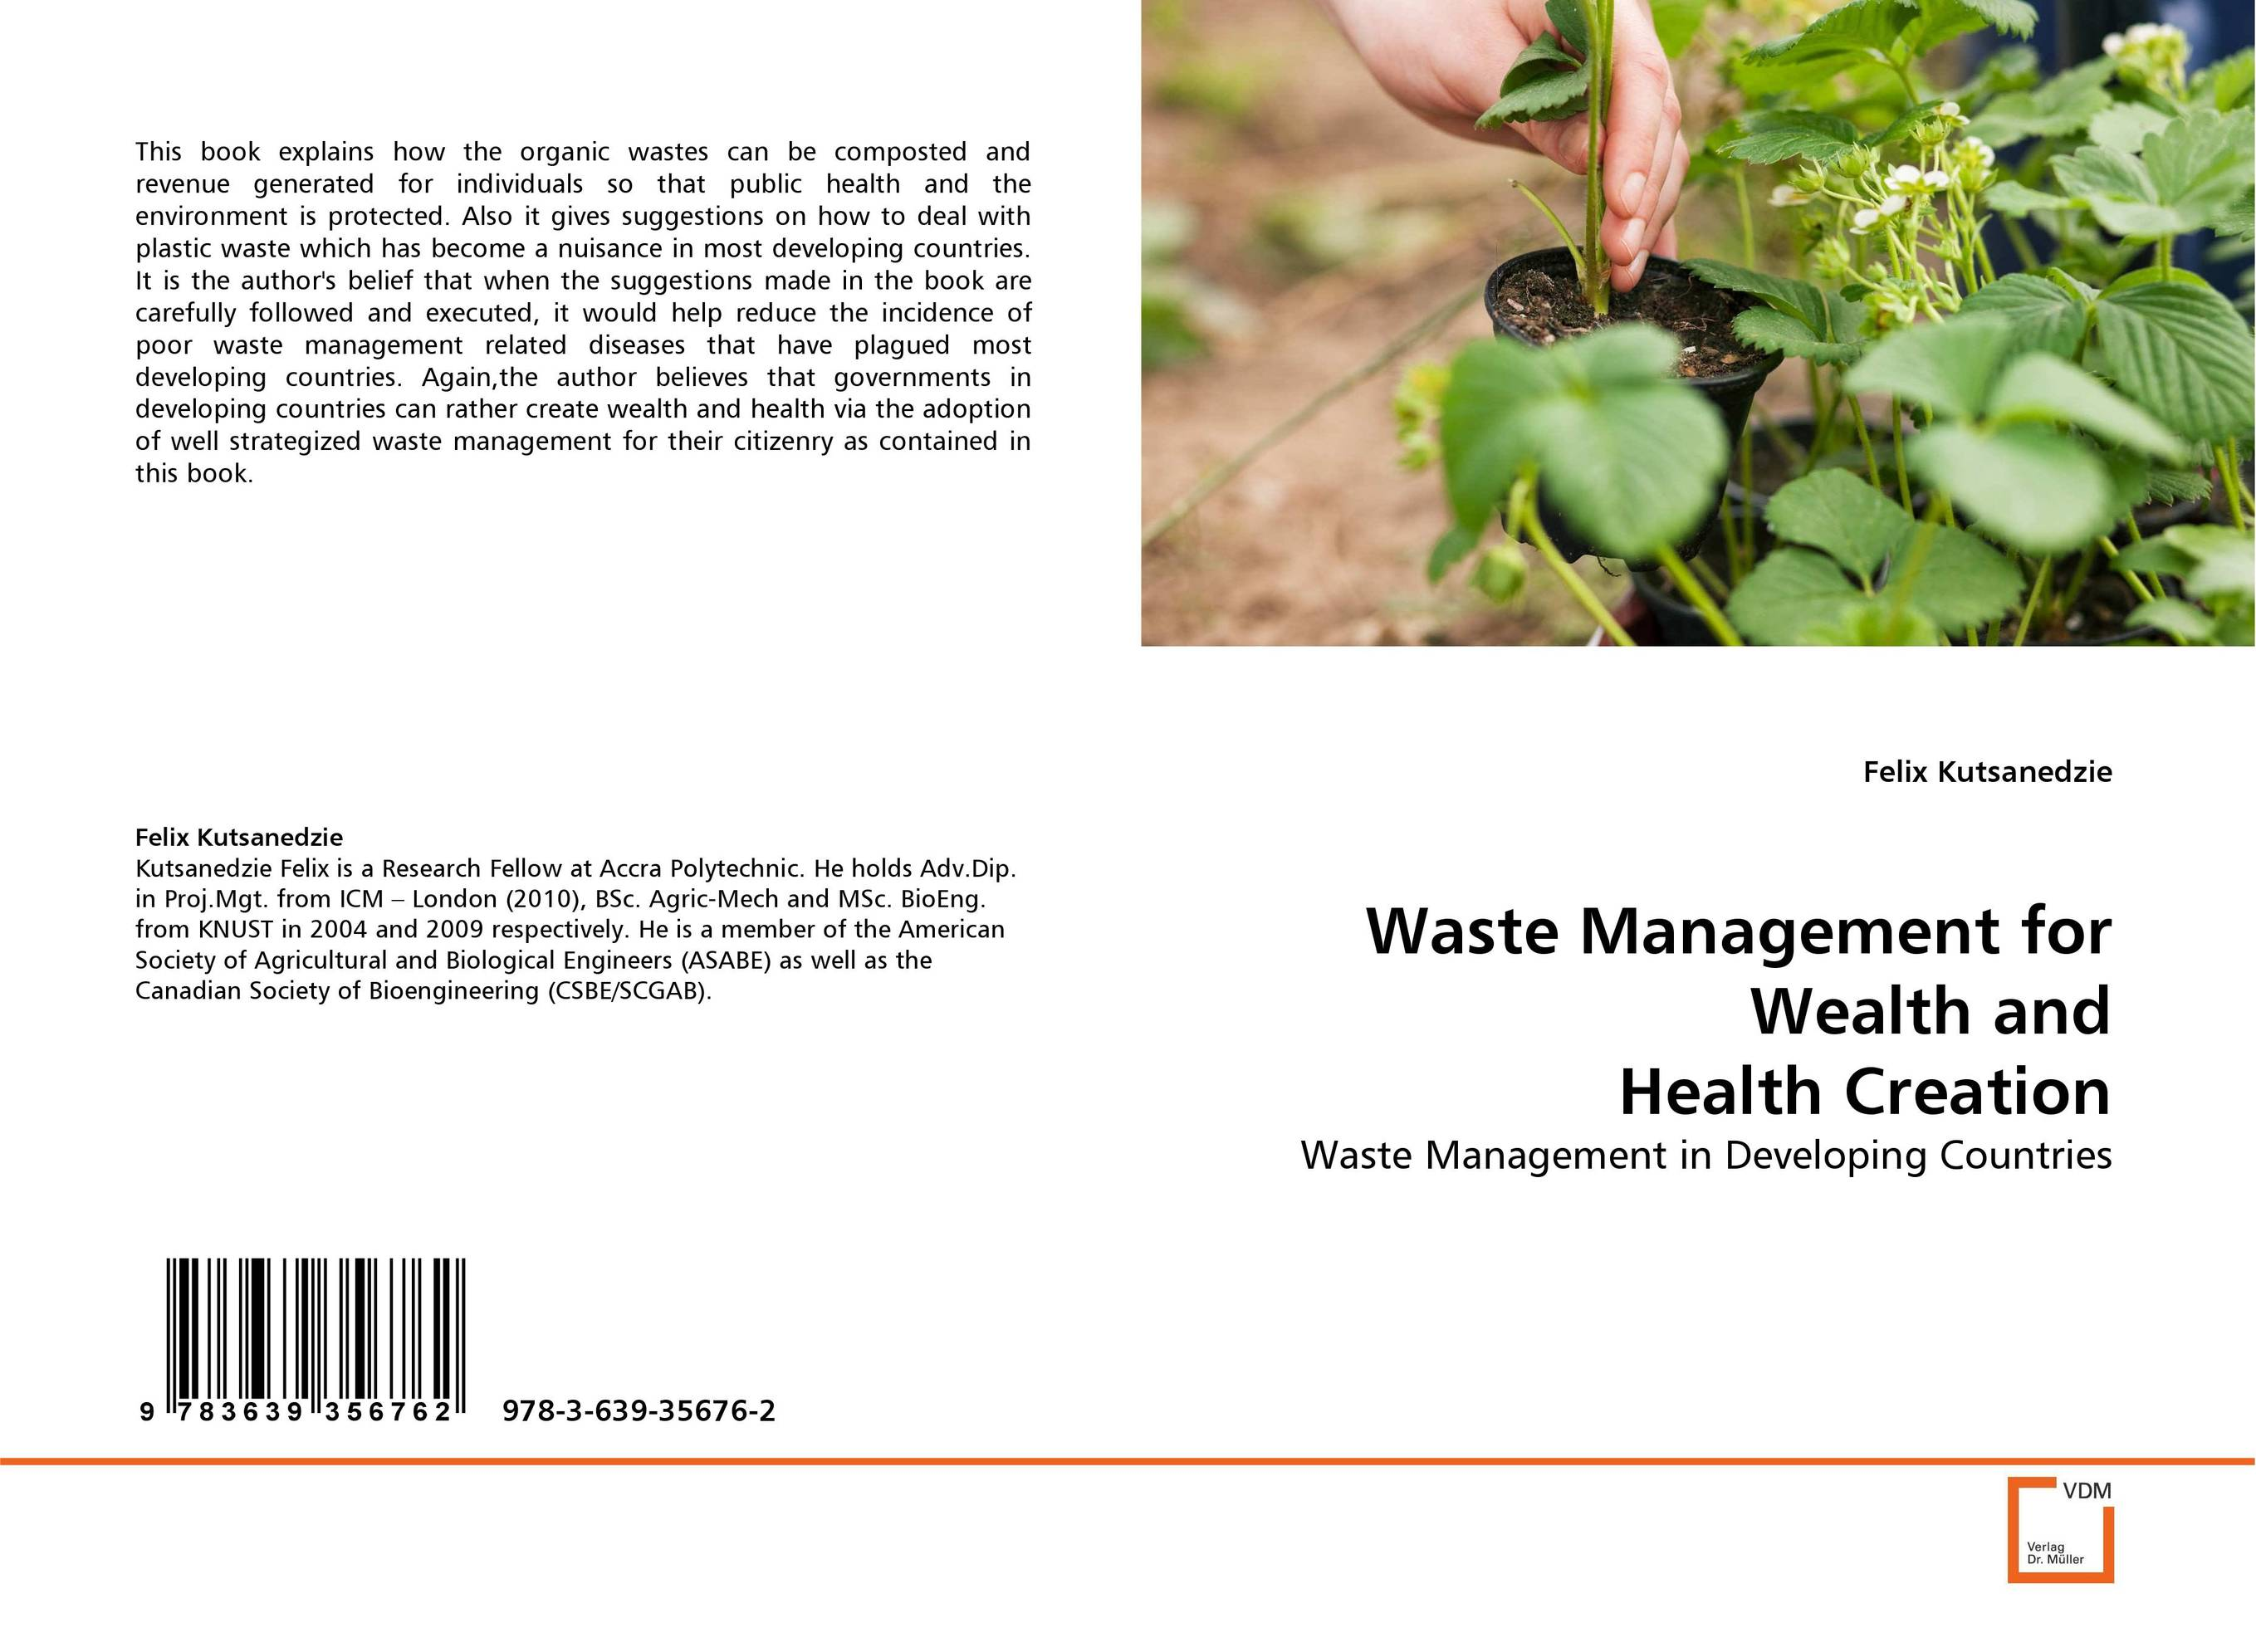 Waste Management for Wealth and Health Creation prostate health devices is prostate removal prostatitis mainly for the prostate health and prostatitis health capsule